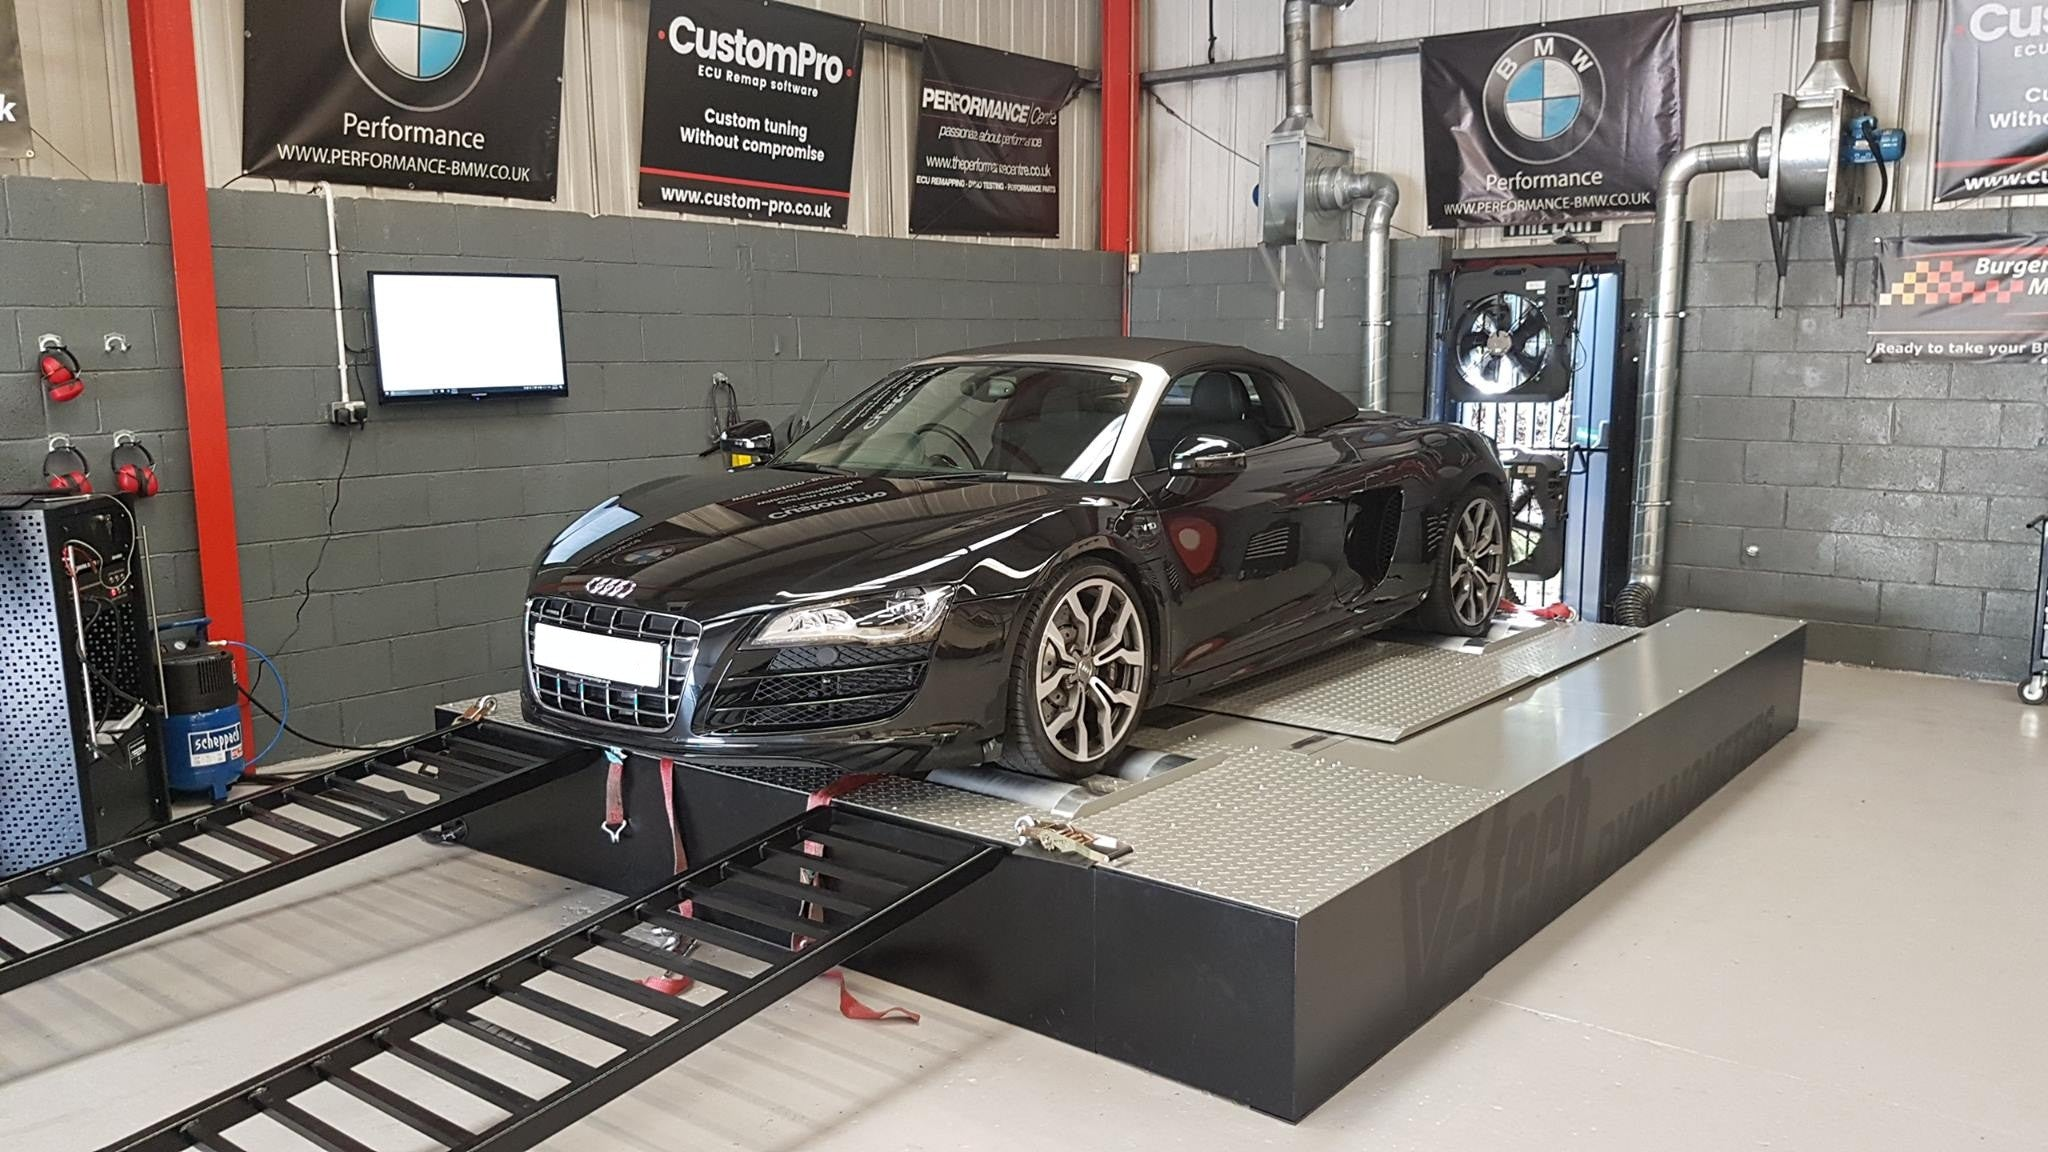 Audi R8 V10 - CustomPro software